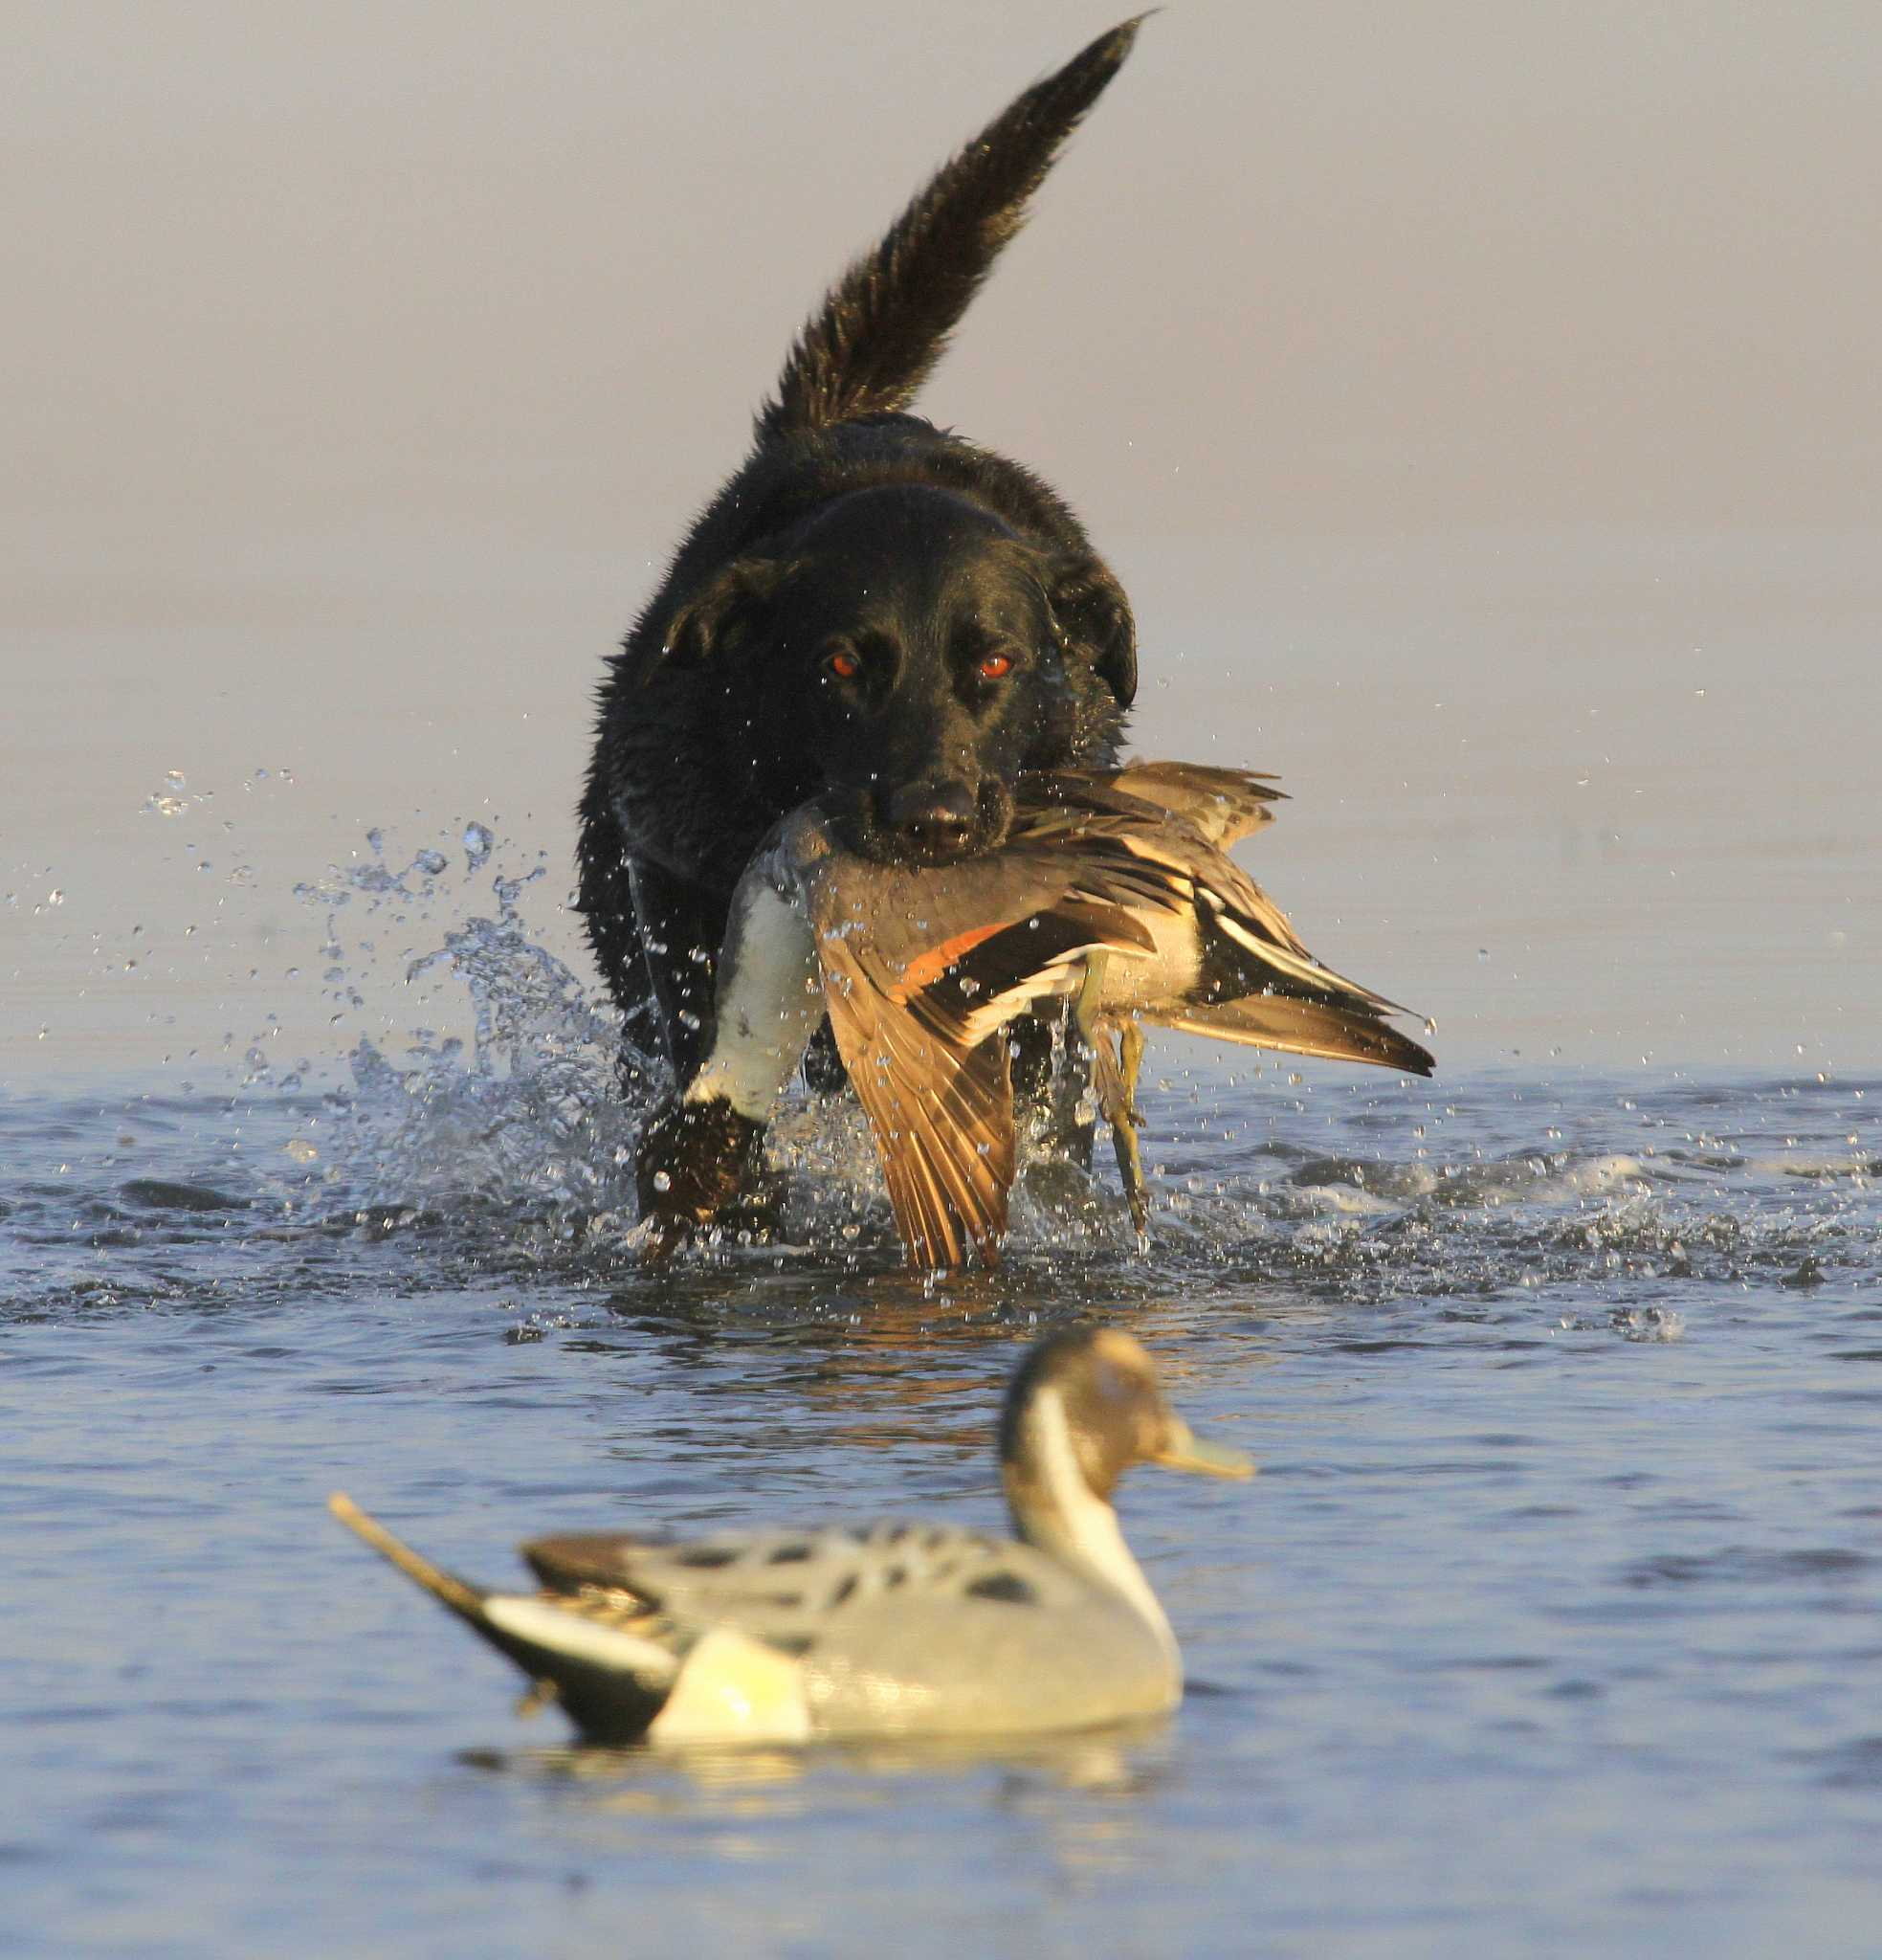 579359ded5902 Banner duck season closes this weekend - Houston Chronicle